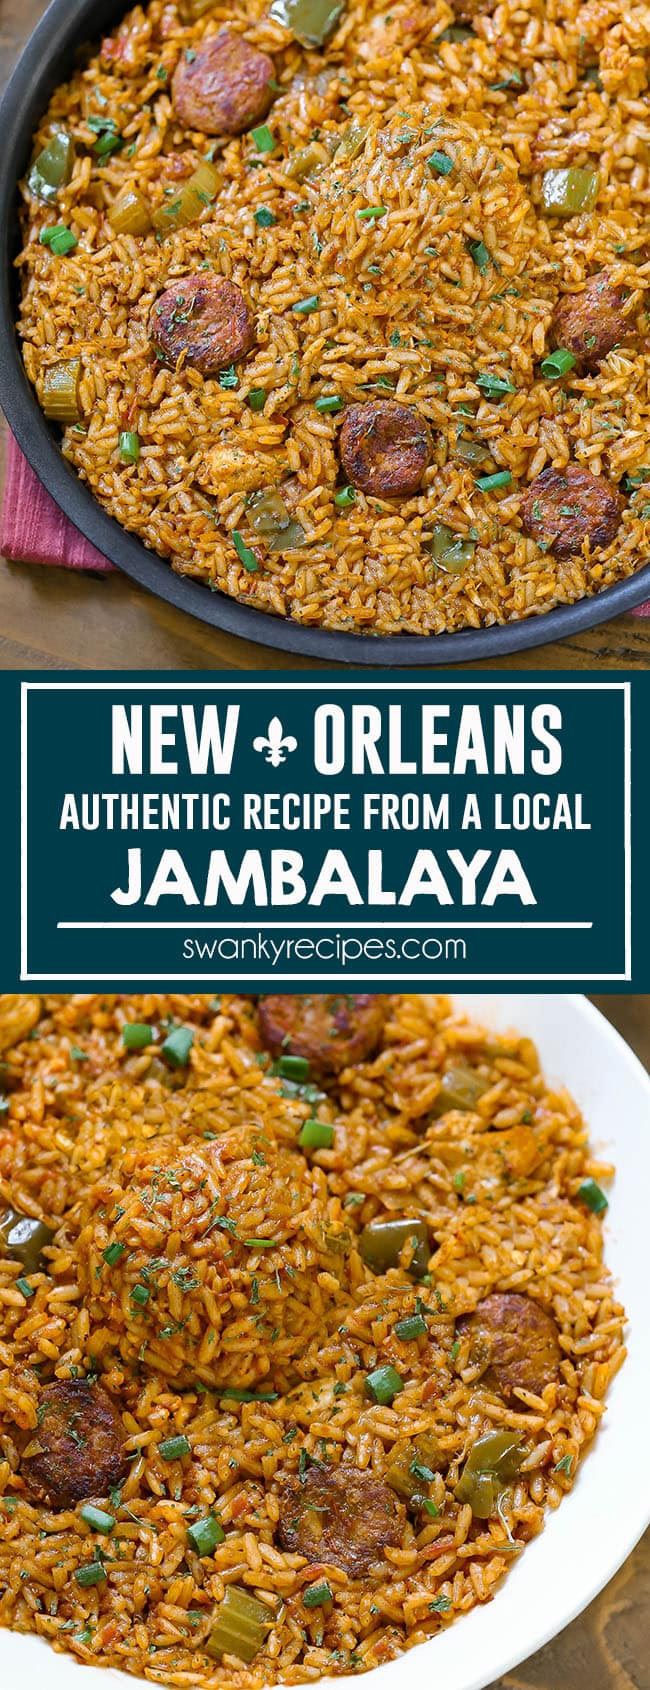 Jambalaya Recipe - Jambalaya in a black skillet on a wooden board with a pink napkin. A seasoned rice dish recipe with rounds of andouille sausage, green onions, celery chunks in a yellow tomato sauce. Text in center reads New Orleans authentic recipe from a local Jambalaya. Second image is the jambalaya in a white bowl on a wooden board.